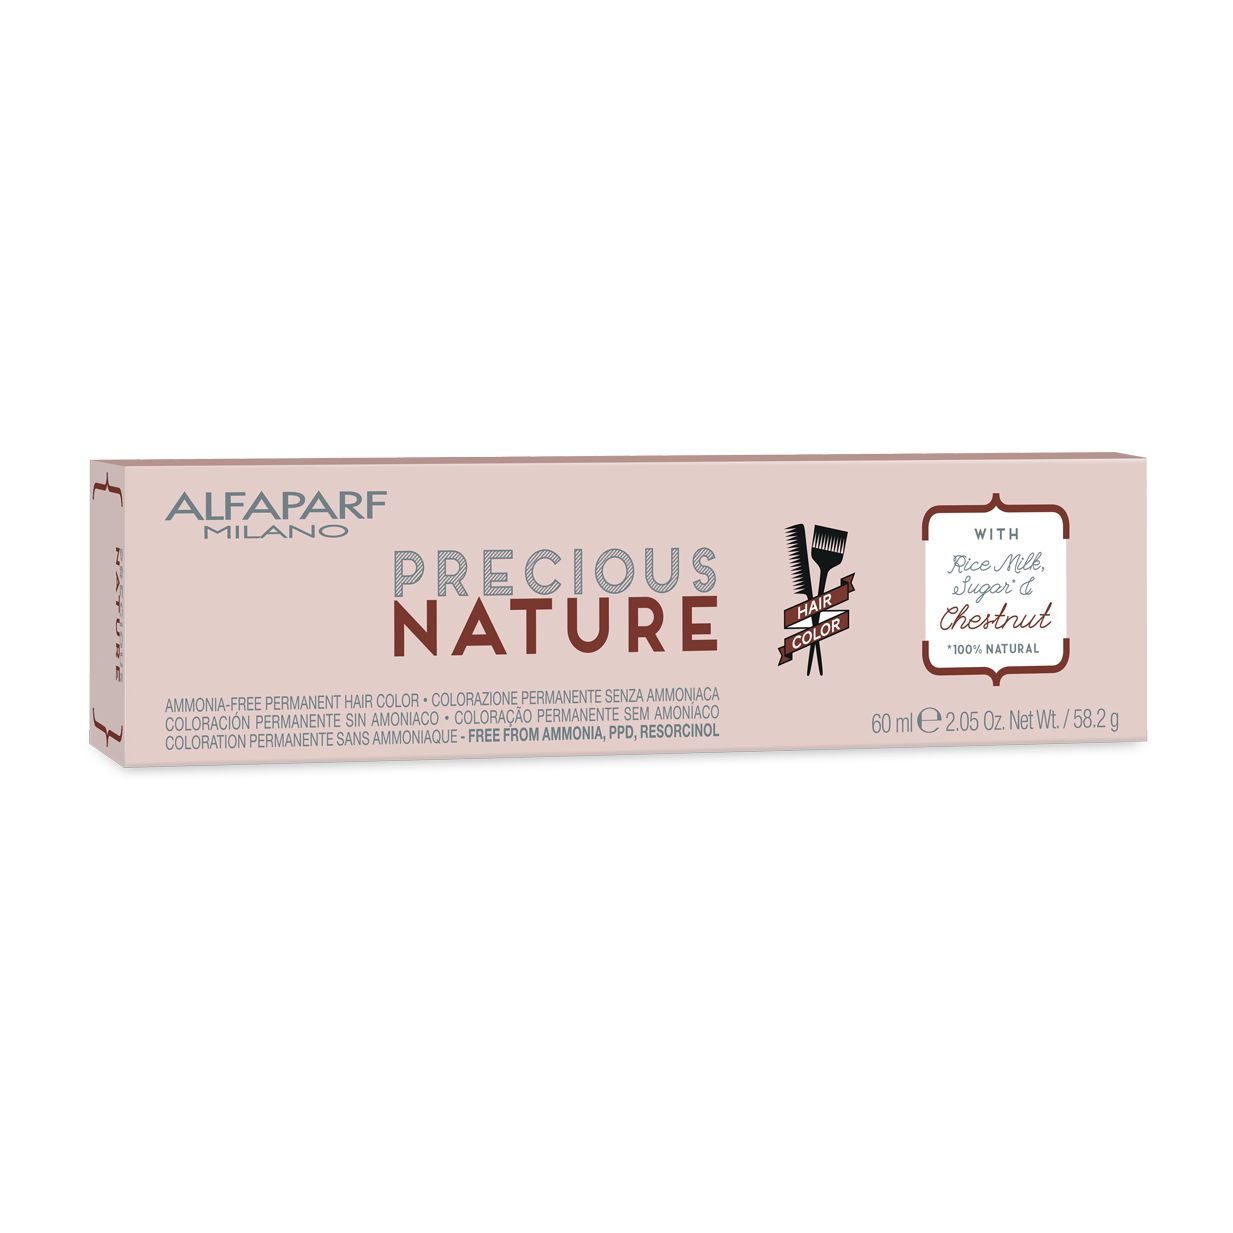 Alfaparf Milano Precious Nature Hair Color Natural Creme de Coloração 8NI Louro Claro Intenso 60ml